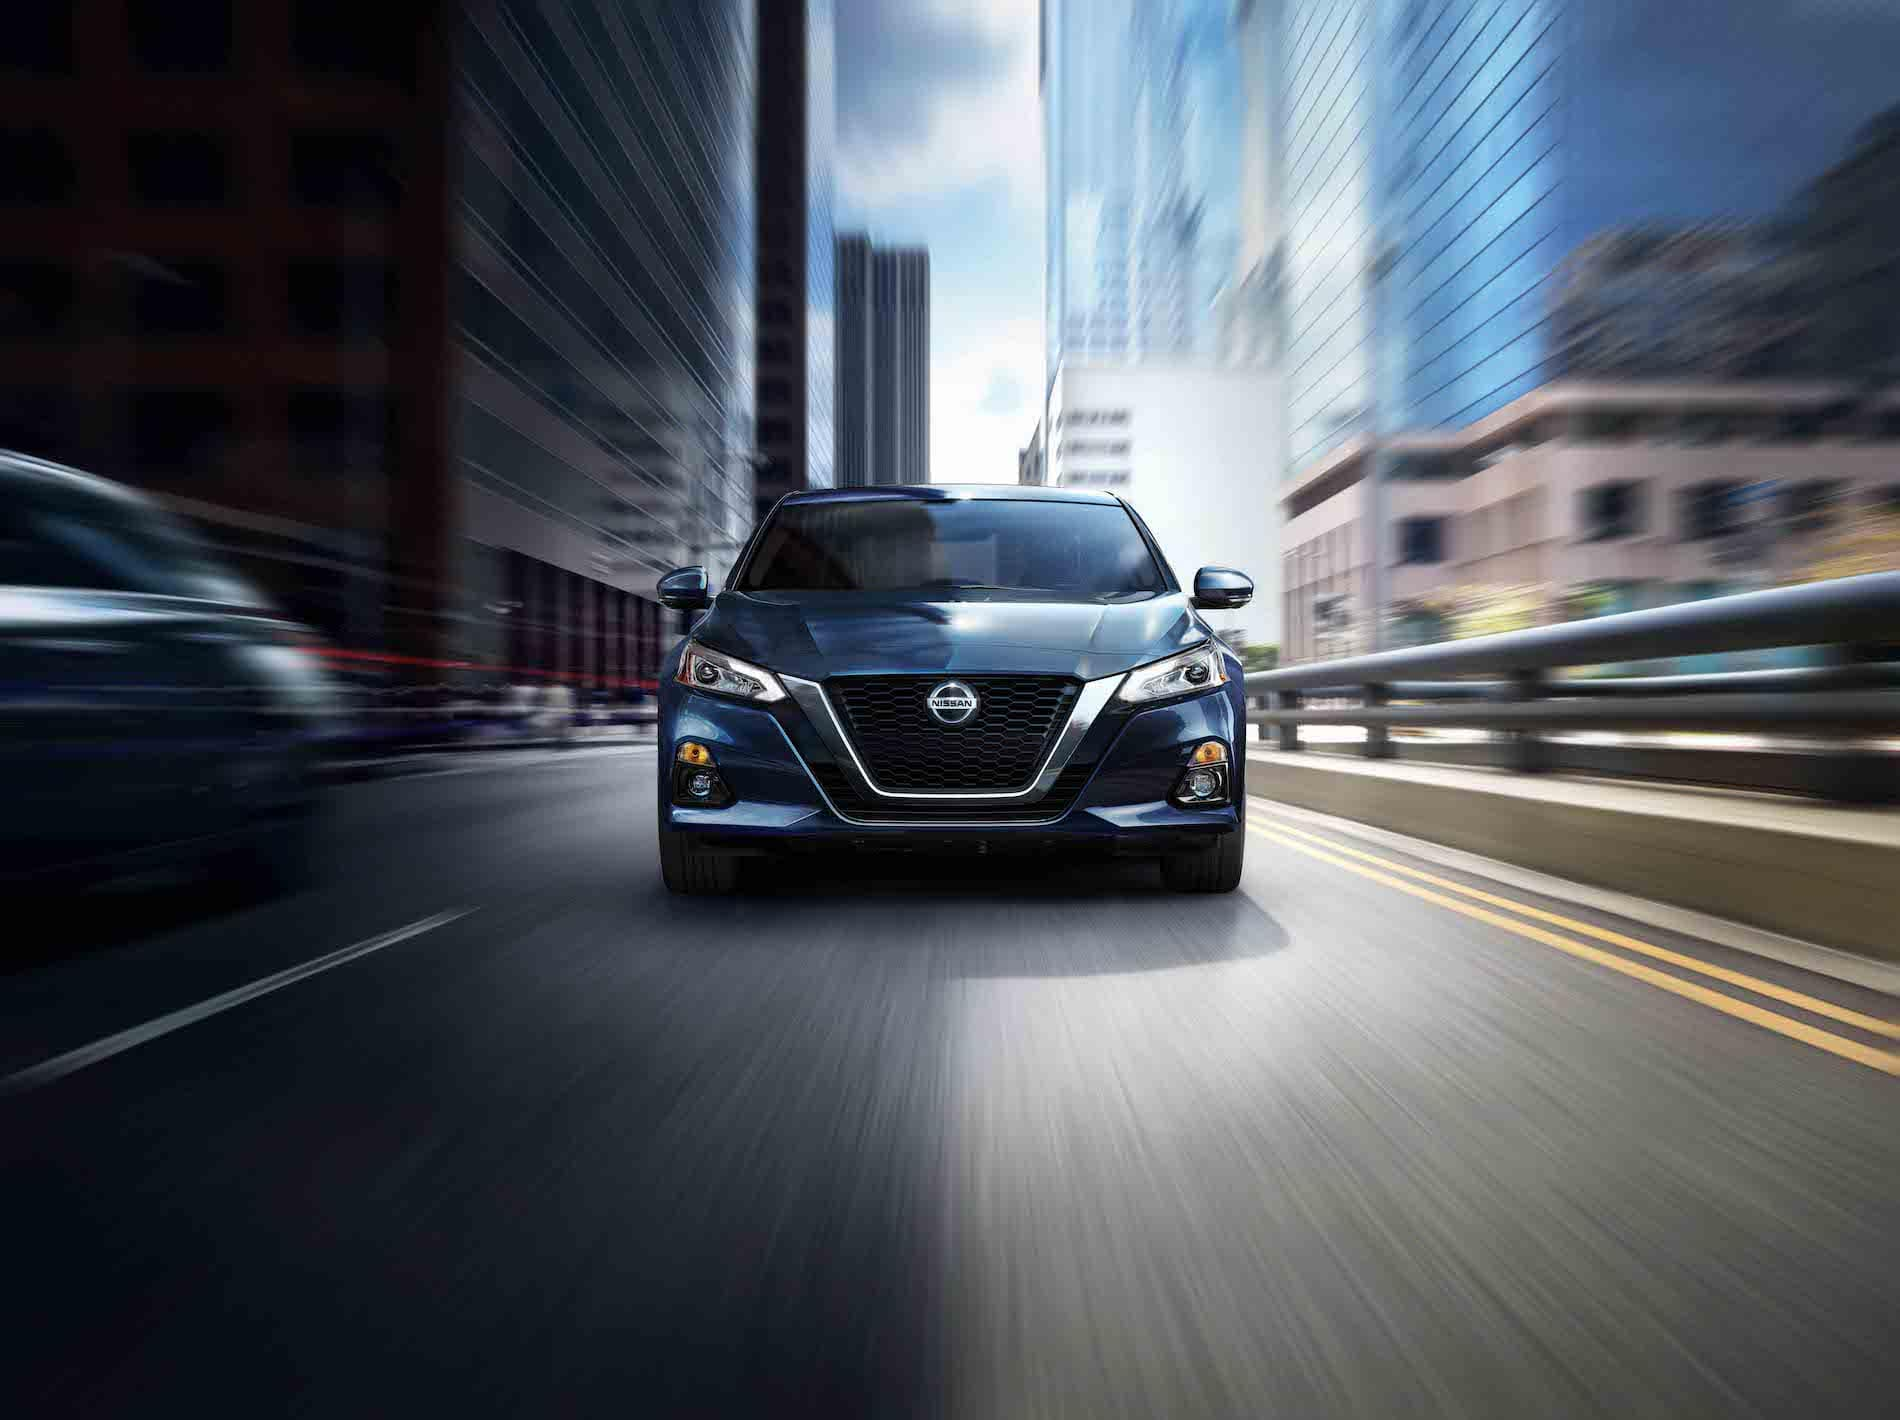 Model Features of the 2020 Nissan Altima at Boch Nissan South of North Attleborough MA | Altima Front Motion City